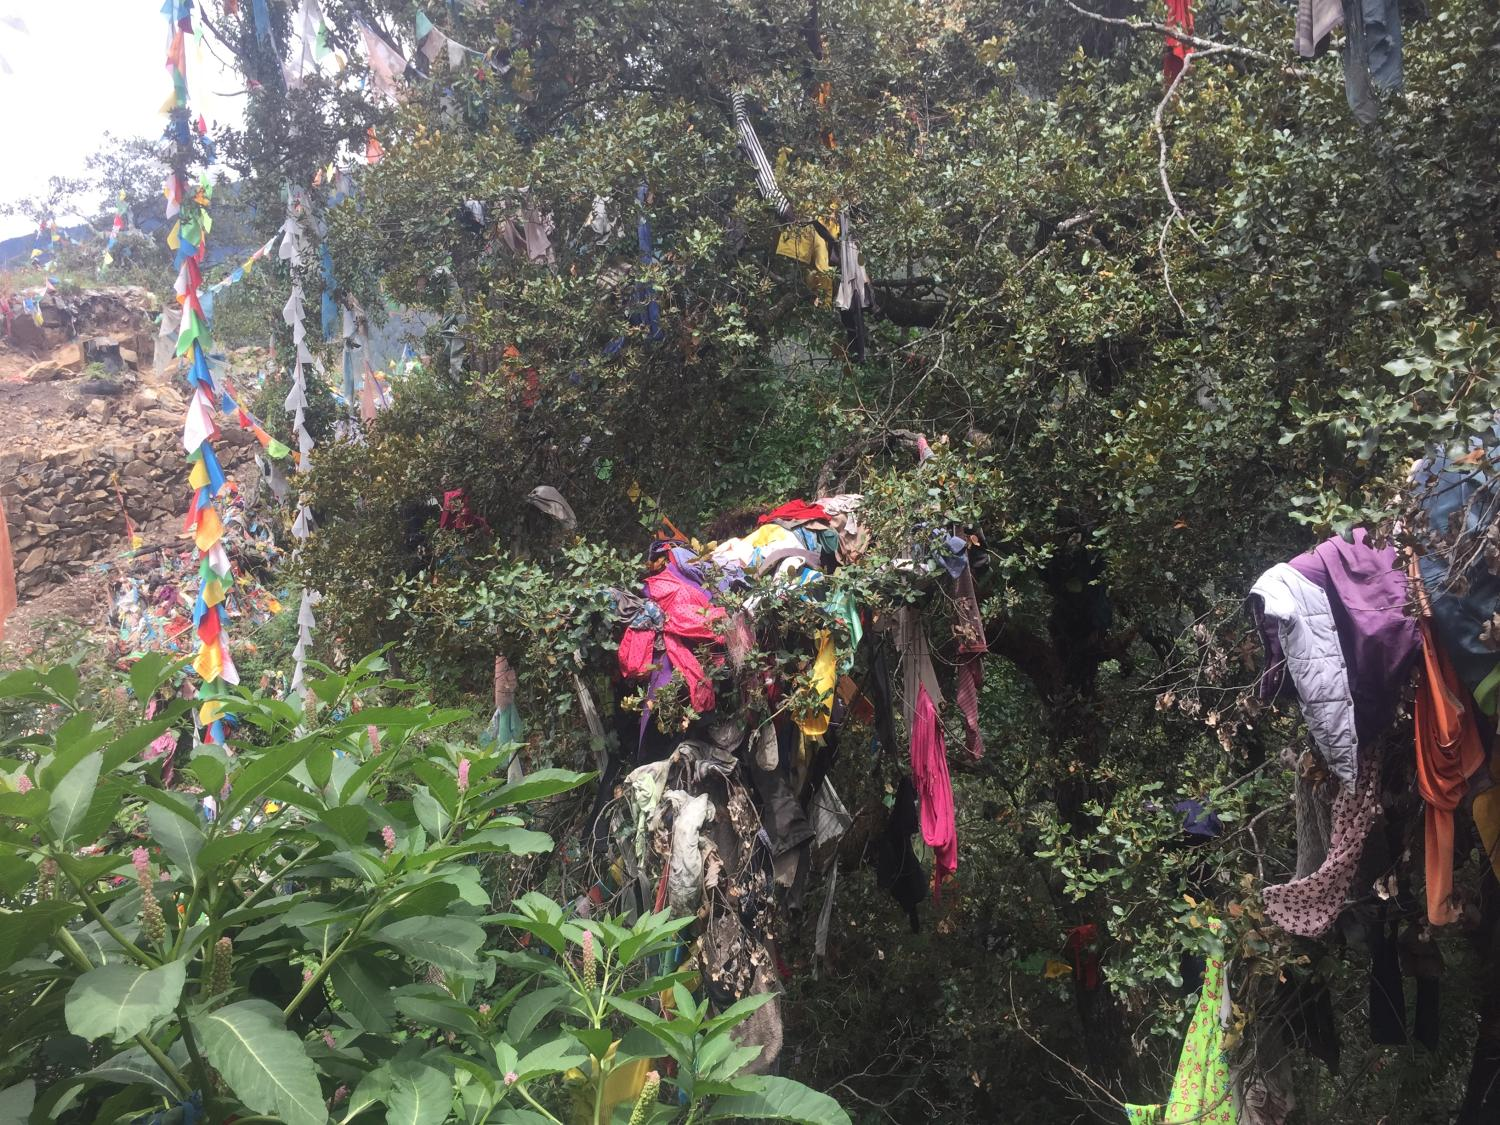 At Asela (lho 'od gsal la), another smaller pass, pilgrims hang many clothes – new chubas, sweaters, pants, face masks, shirts, etc. -- on trees. Some say these are offerings for dead relatives and friends who might need them in the bar do while others say that one's dead relatives follow one on the pilgrimage, and that by leaving the clothes there, the deceased are able to rest there rather than following for the whole journey.  Still others stated that they believed that the clothes are used for one